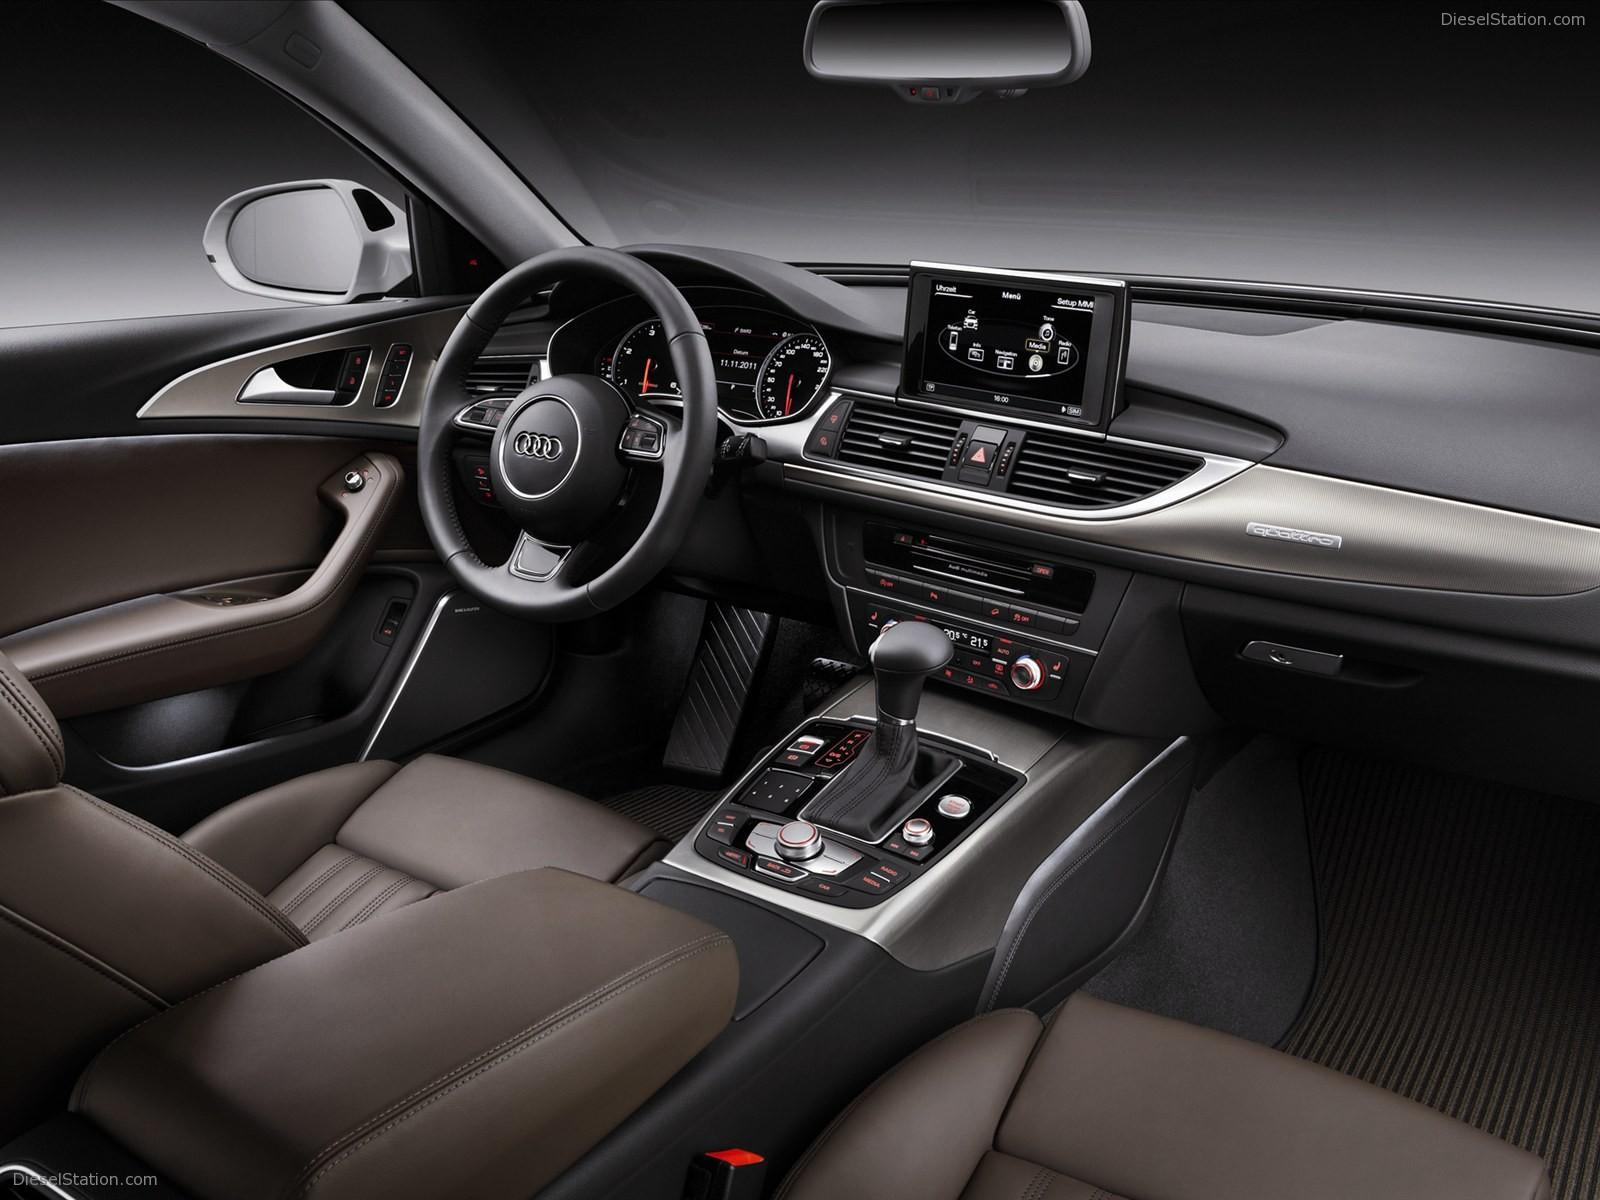 Audi A6 Allroad Quattro 2012 Exotic Car Wallpapers #02 of 12 ...